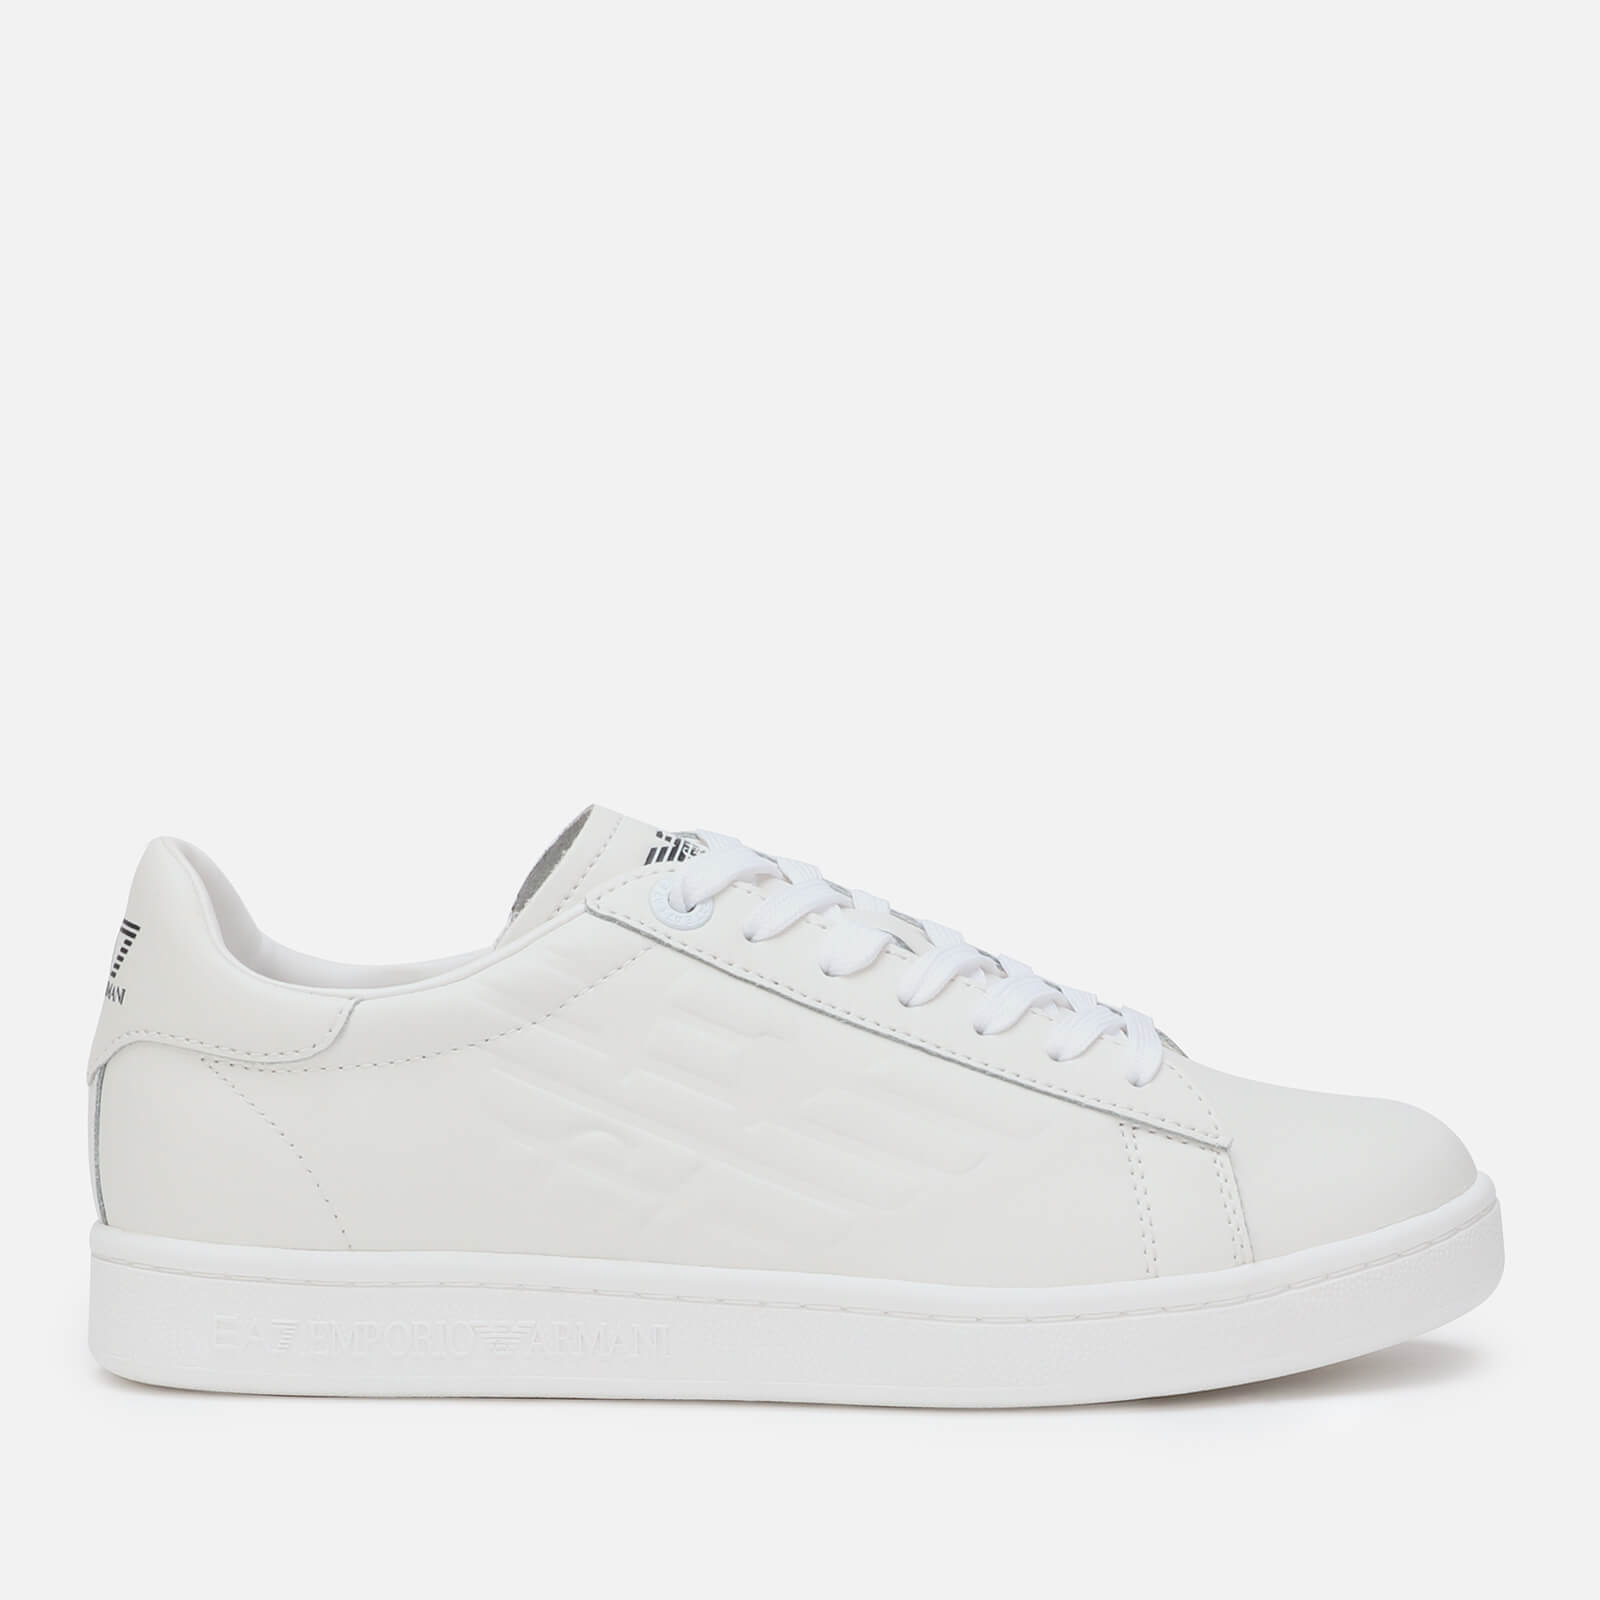 3665e6bf Emporio Armani EA7 Men's Eagle Court Trainers - White/White